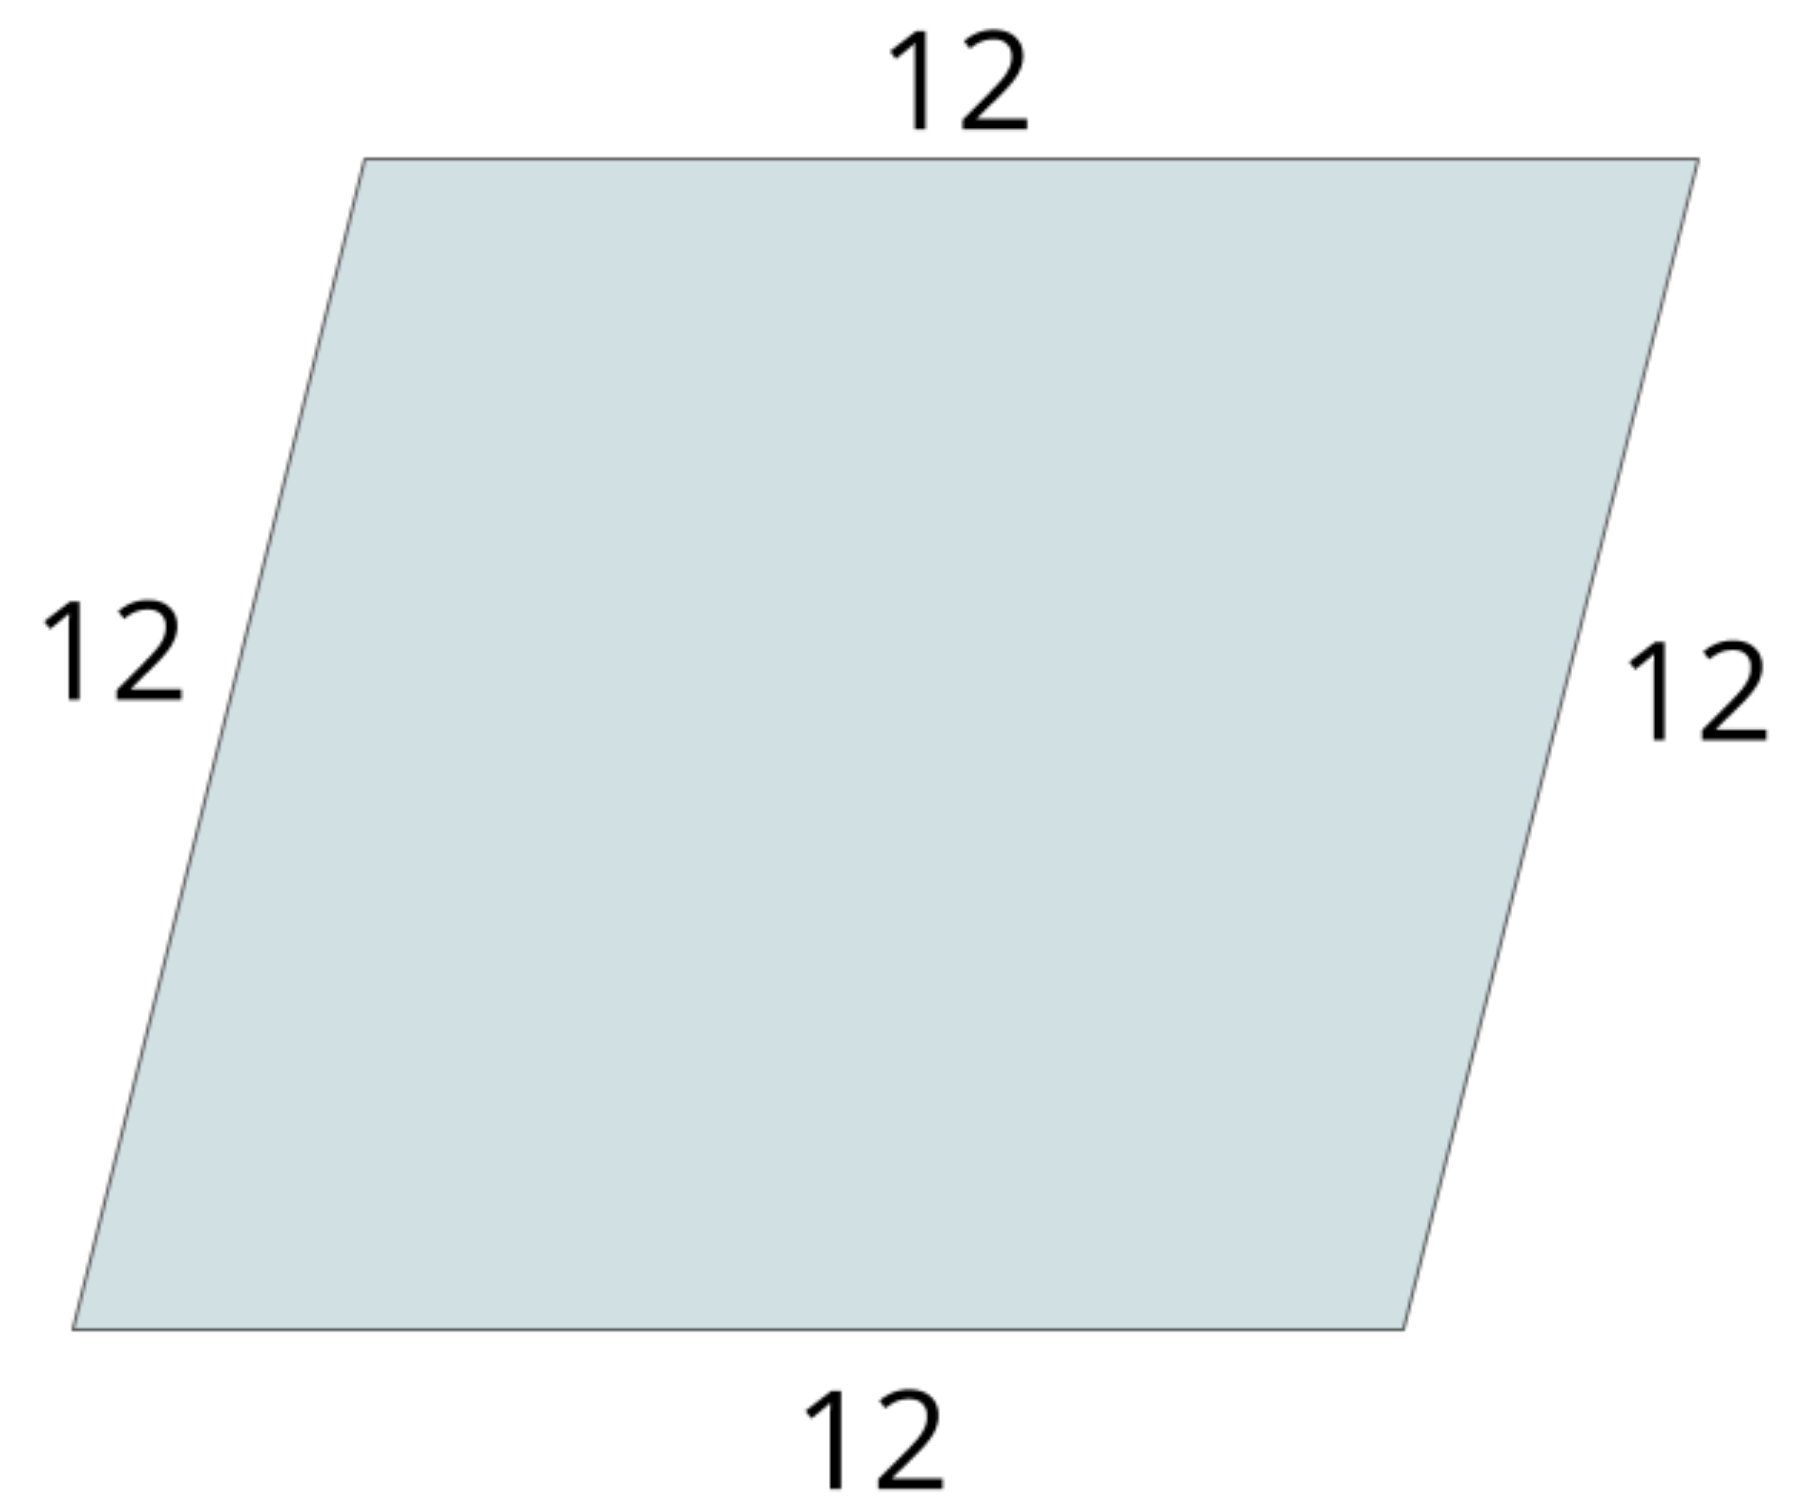 this is a rhombus